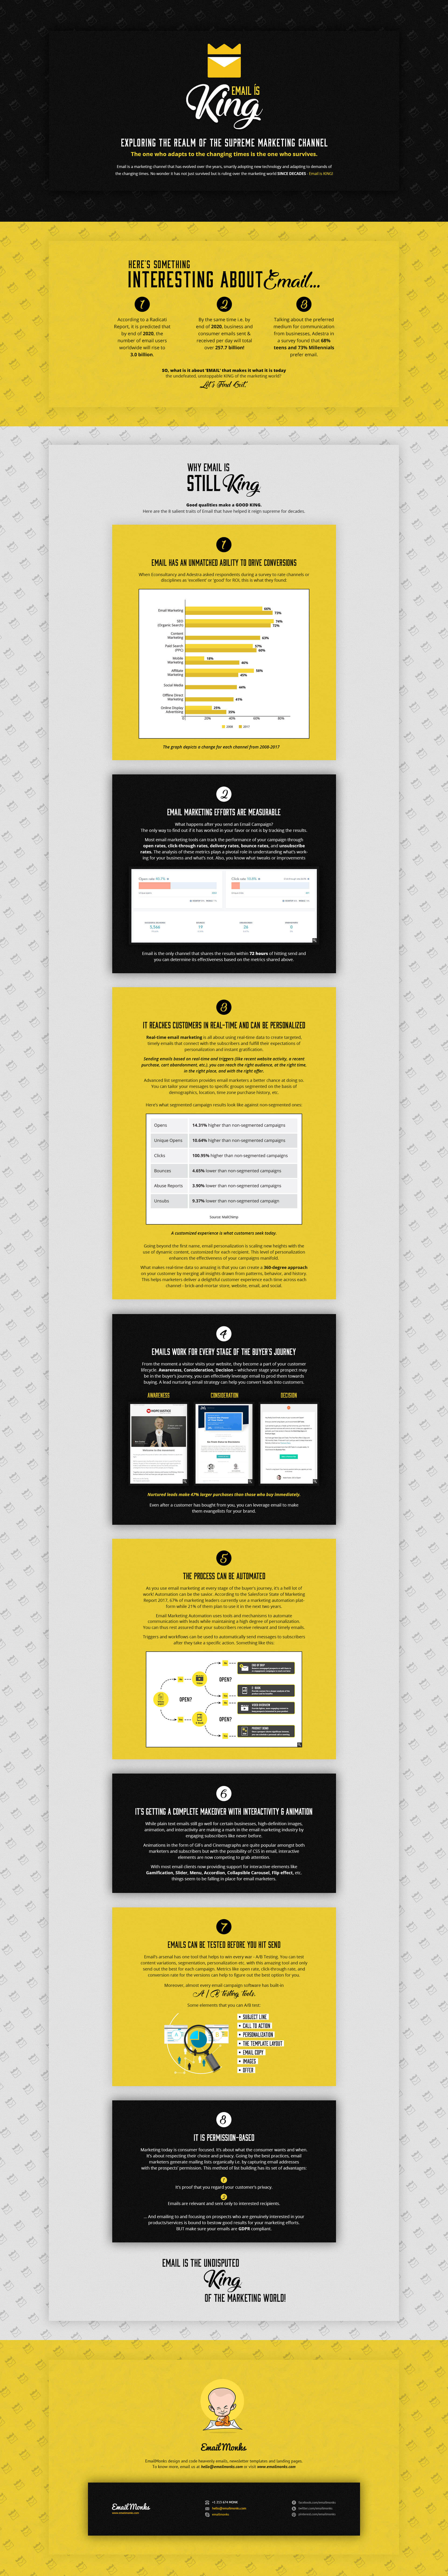 Email-is-King-Infographic